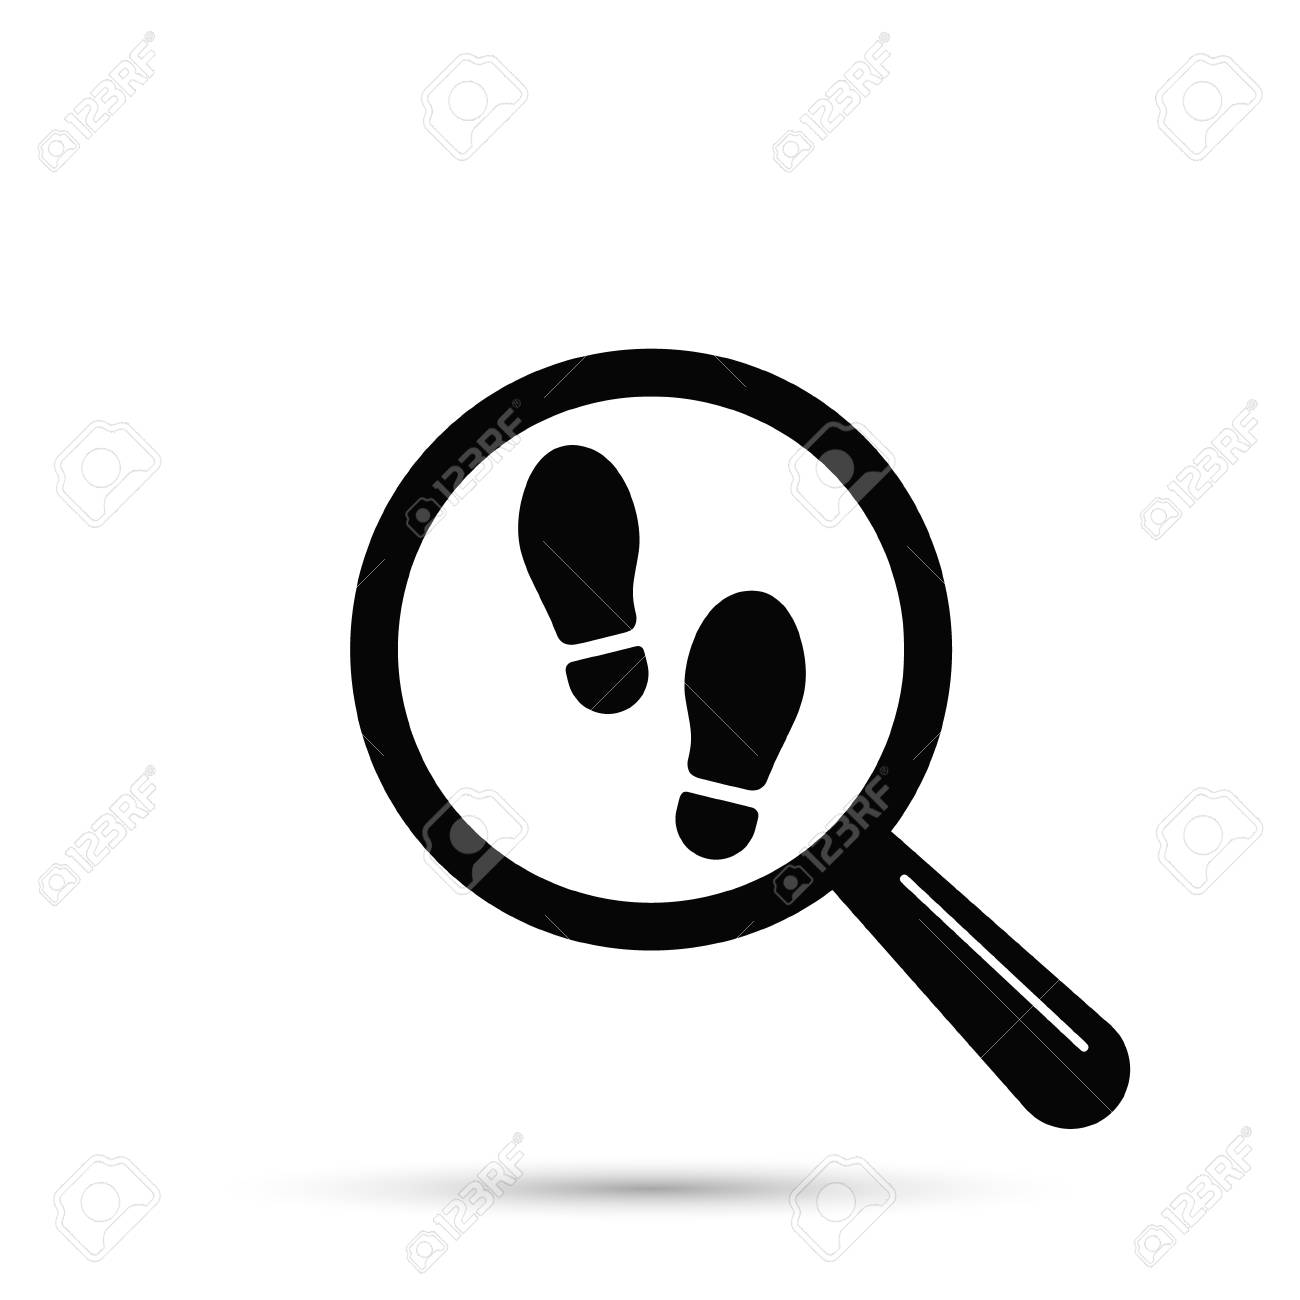 Footprint searching icon, vector isolated flat illustration with magnifier and shoe print. - 97601550